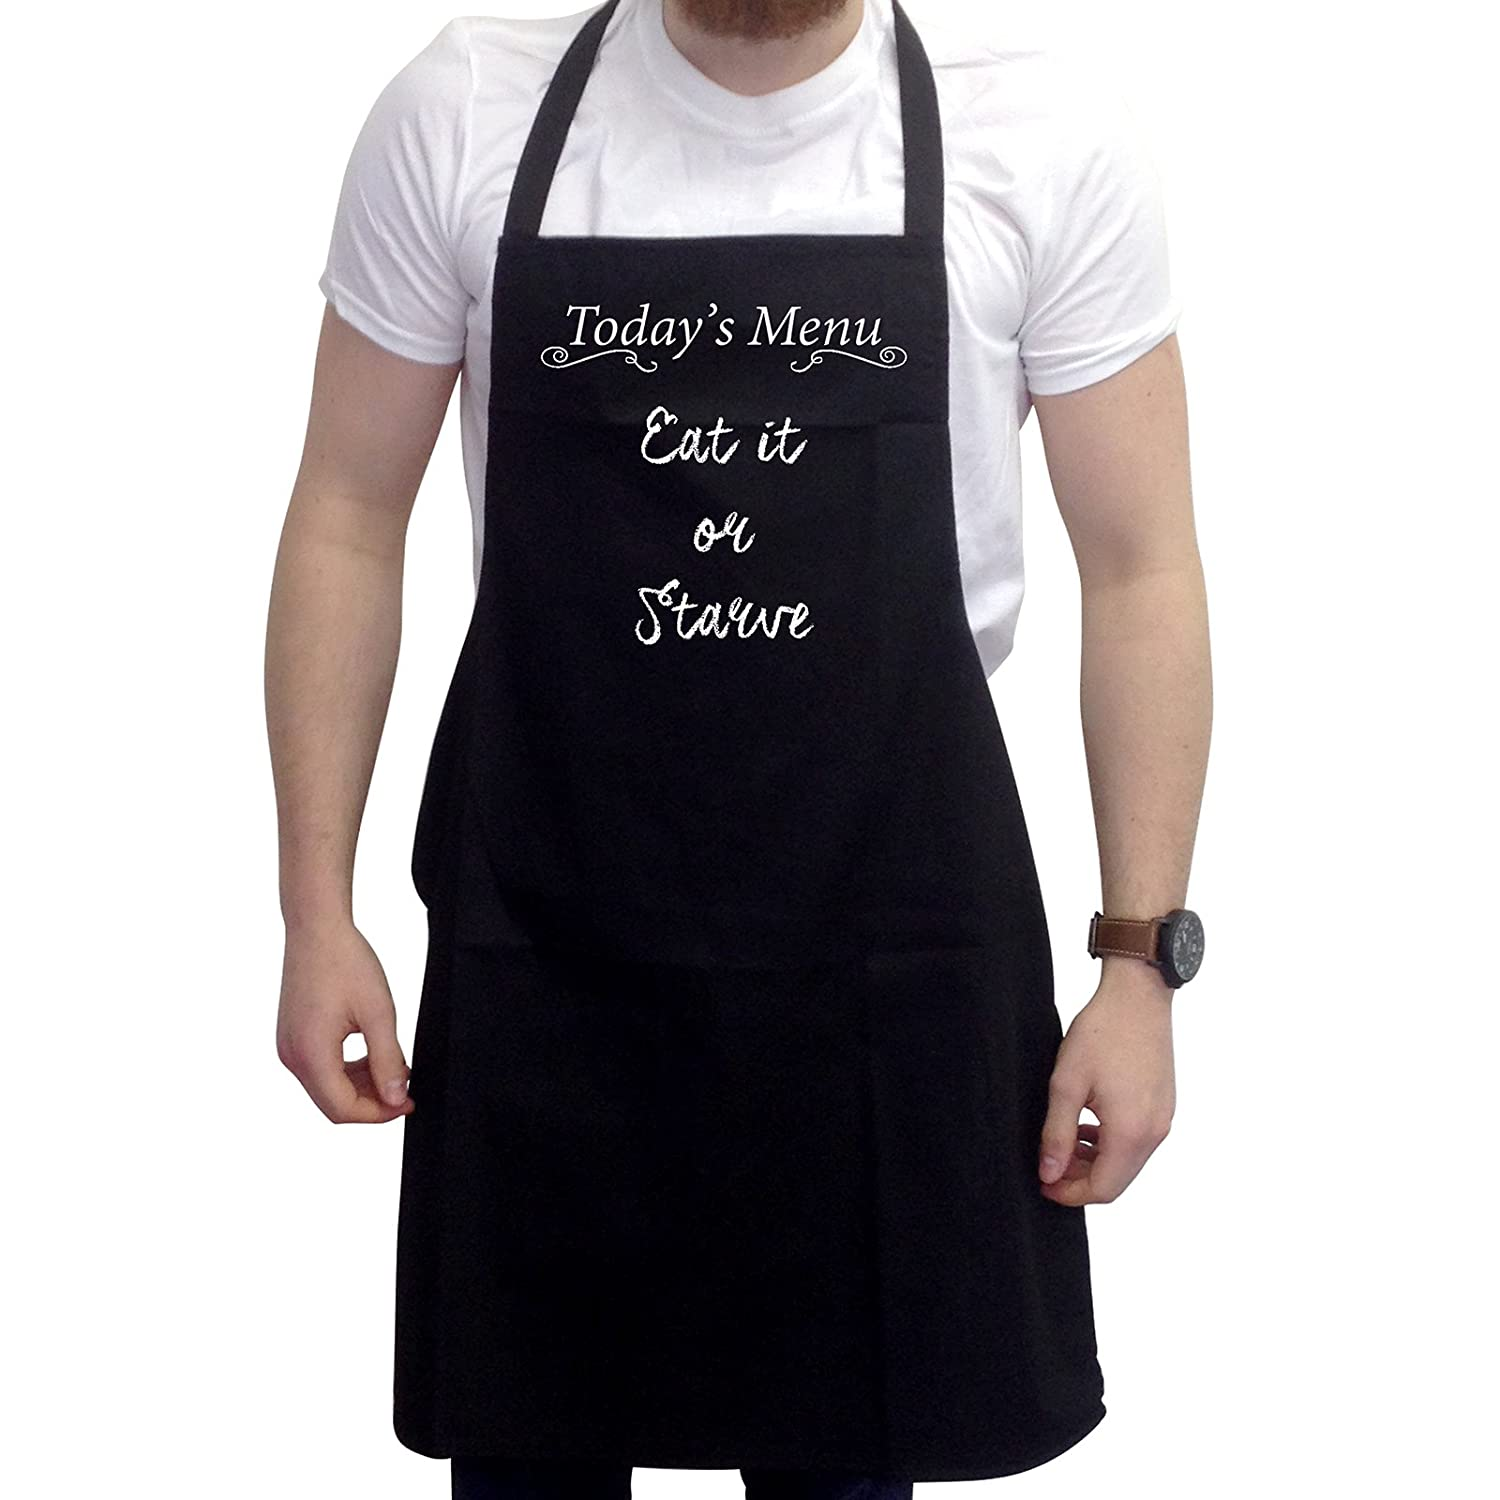 Bang Tidy Clothing Funny BBQ Apron Novelty Aprons Cooking Gifts for Men Eat it or Starve Black One Size FD4817P1